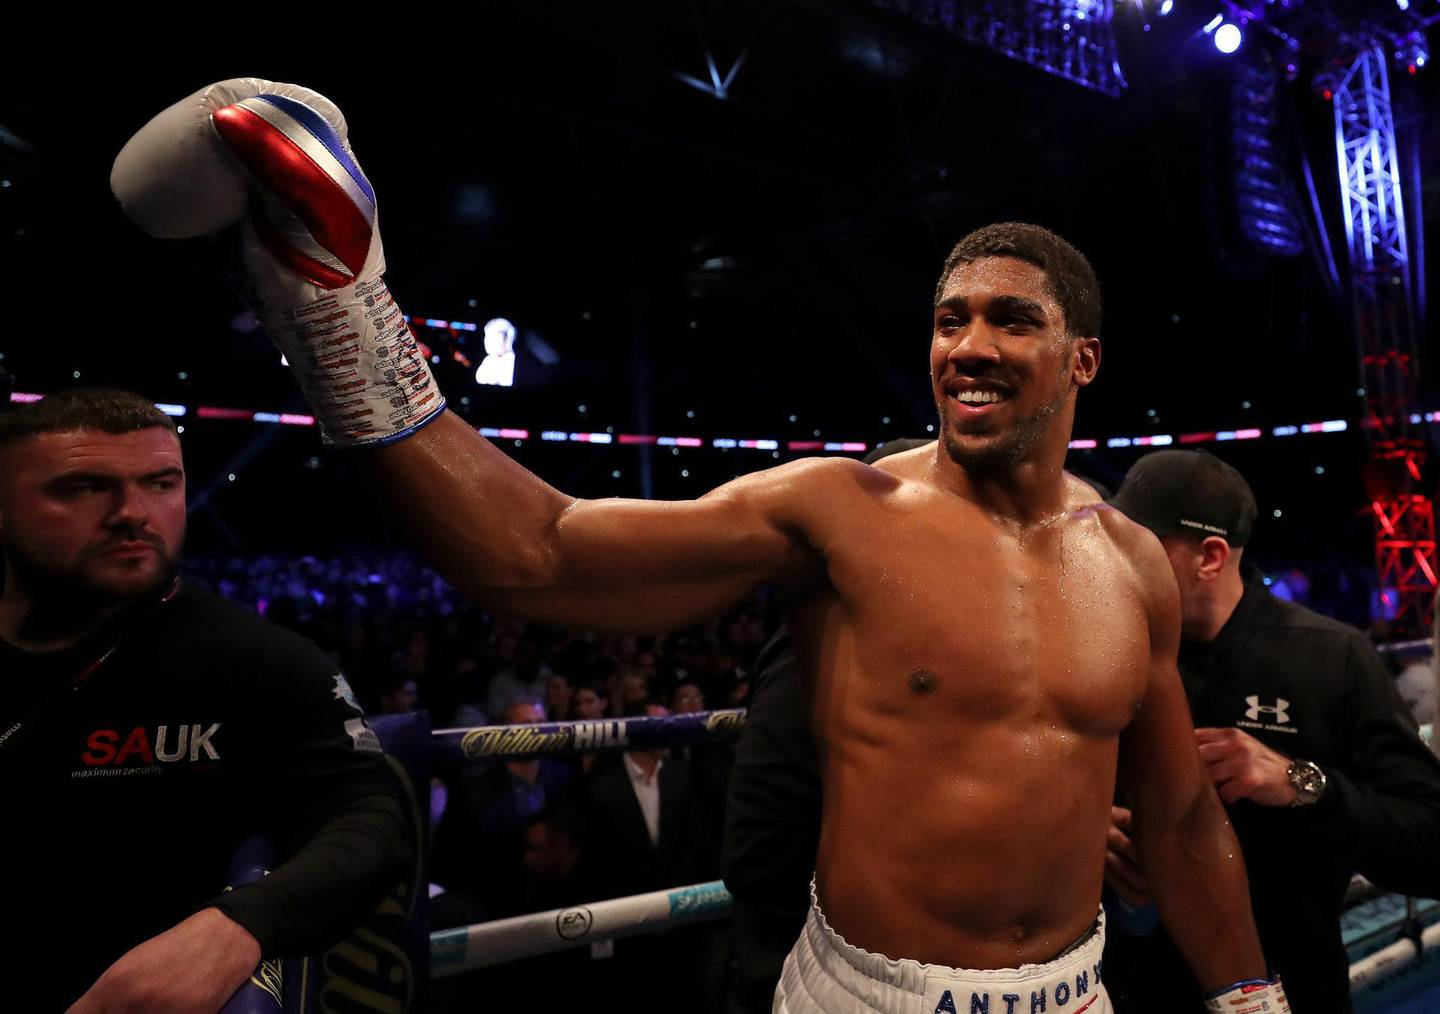 LONDON, ENGLAND - SEPTEMBER 22:  Anthony Joshua celebrates victory after the IBF, WBA Super, WBO & IBO World Heavyweight Championship title fight between Anthony Joshua and Alexander Povetkin at Wembley Stadium on September 22, 2018 in London, England.  (Photo by Richard Heathcote/Getty Images)